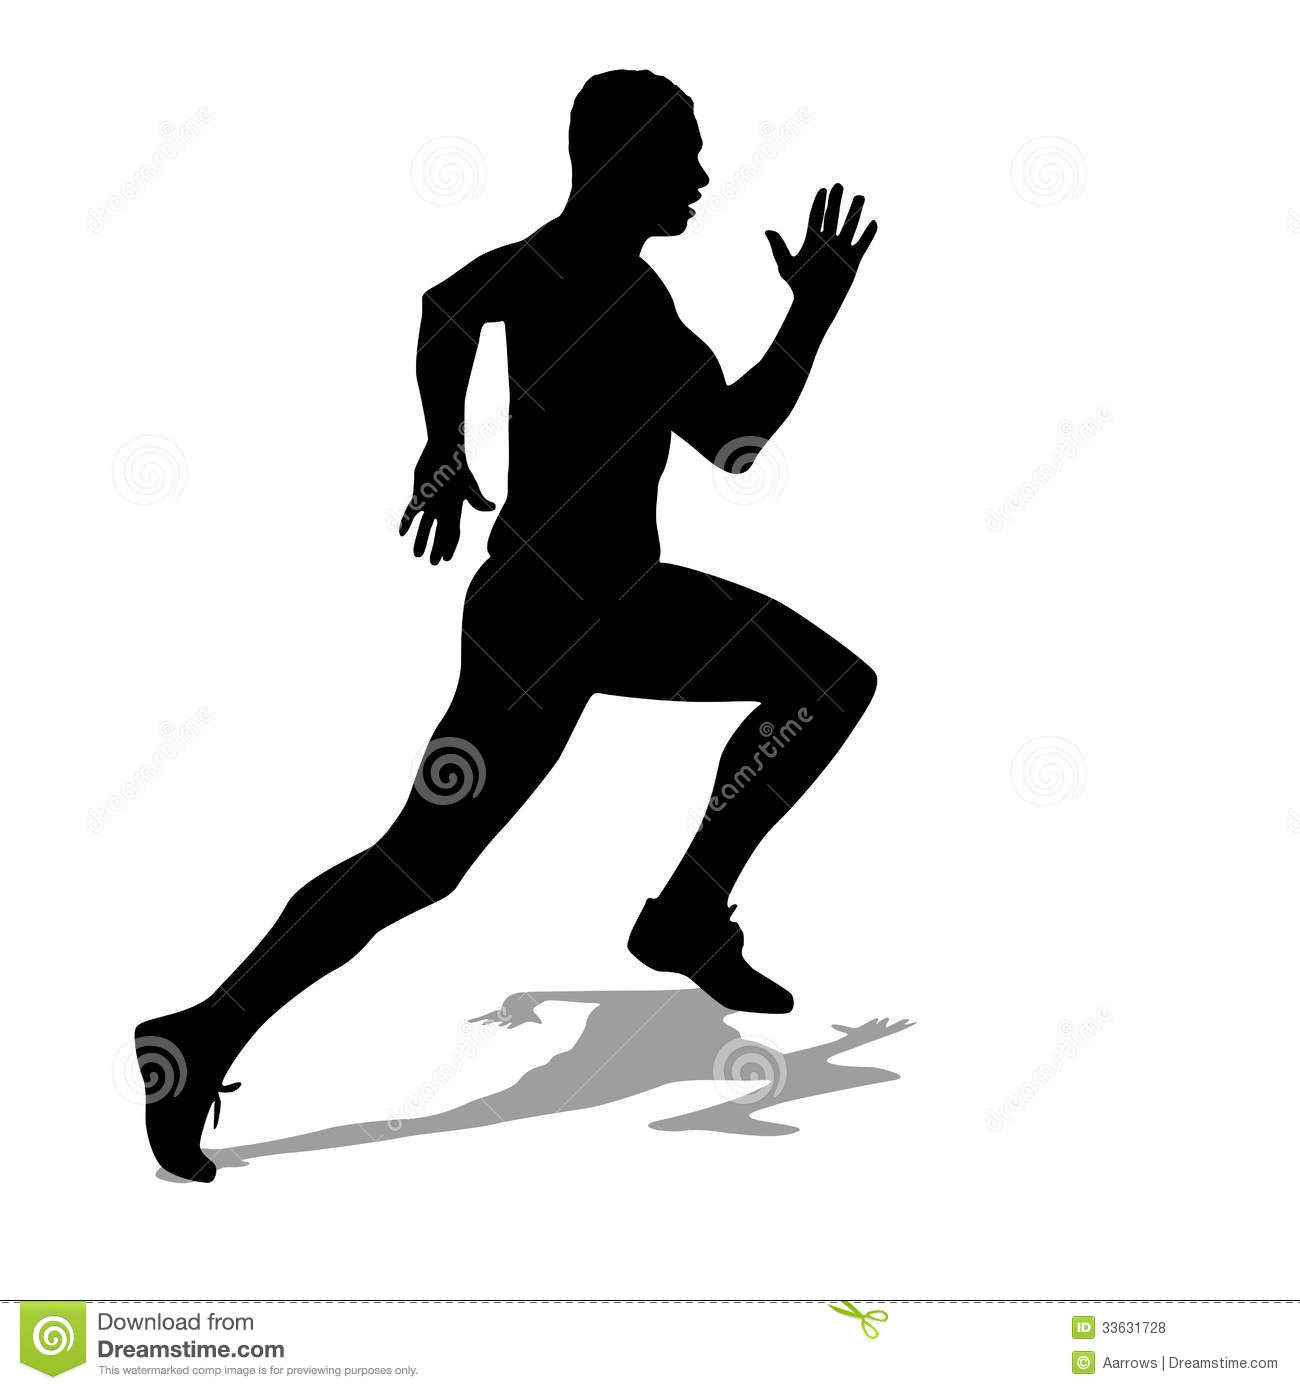 Running Silhouettes Royalty Free Stock Photos - Image: 33631728